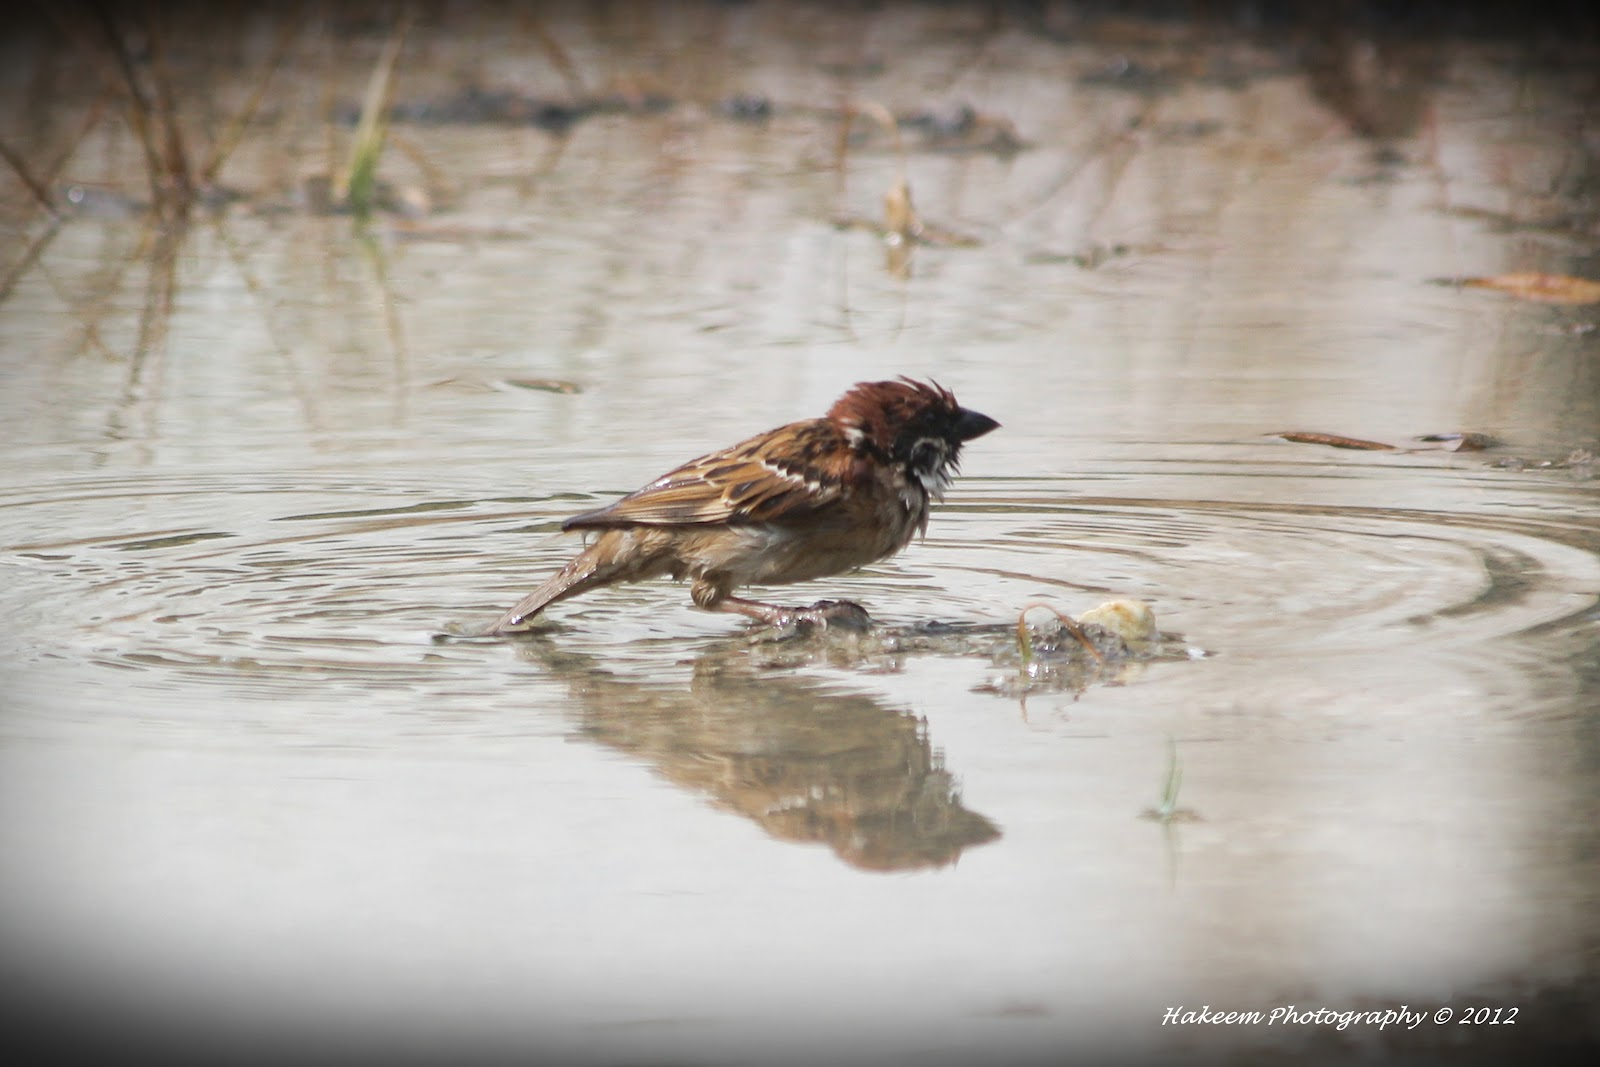 sparrow bathing in puddle